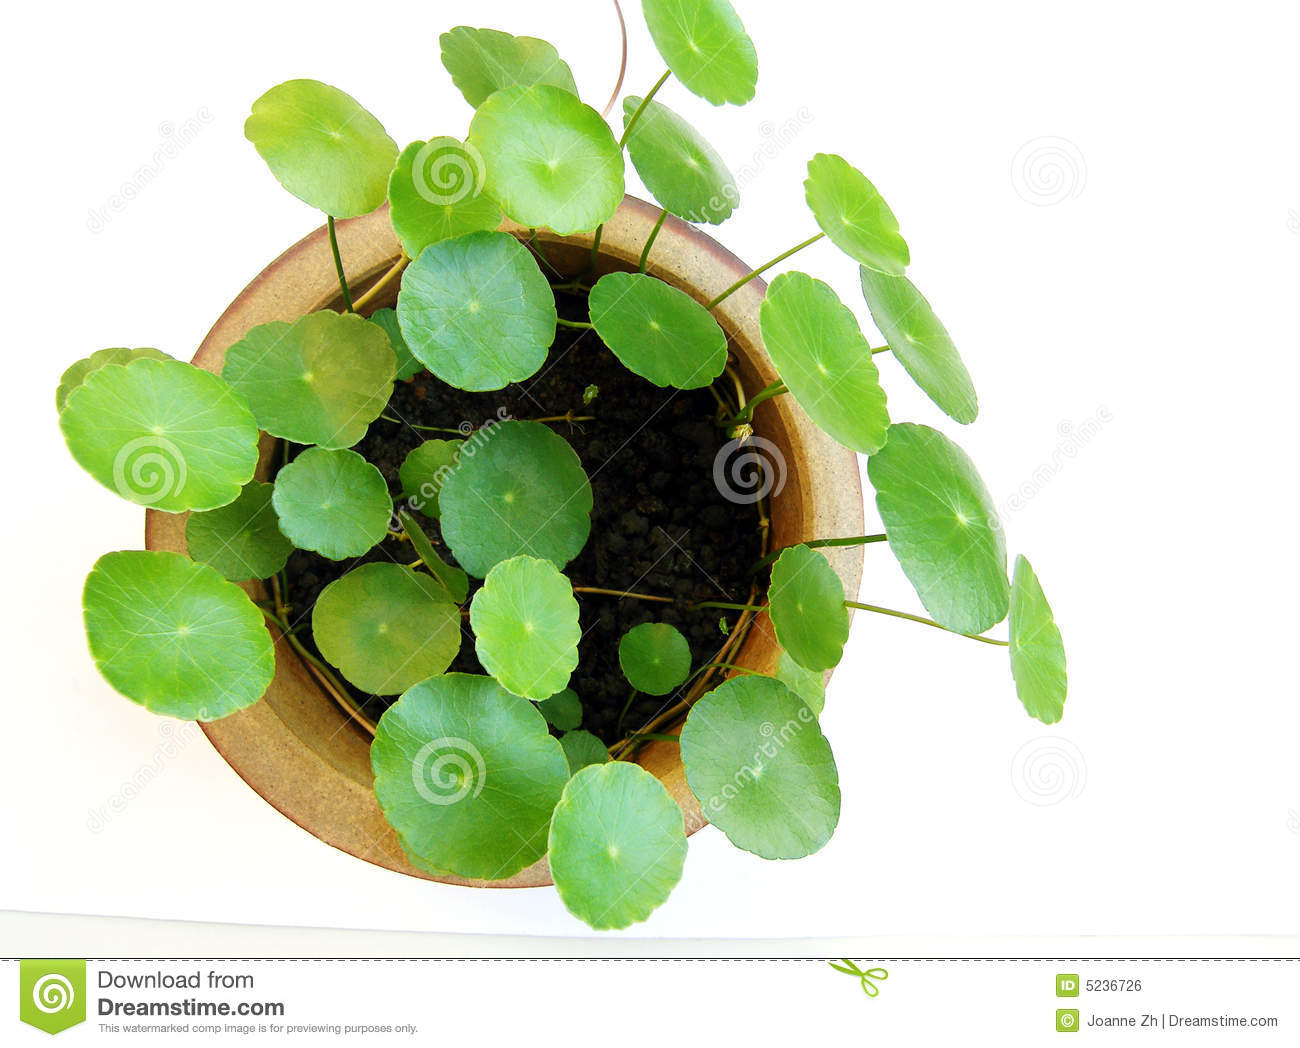 Tropical Aquatic Plant In Pot Royalty Free Stock Image